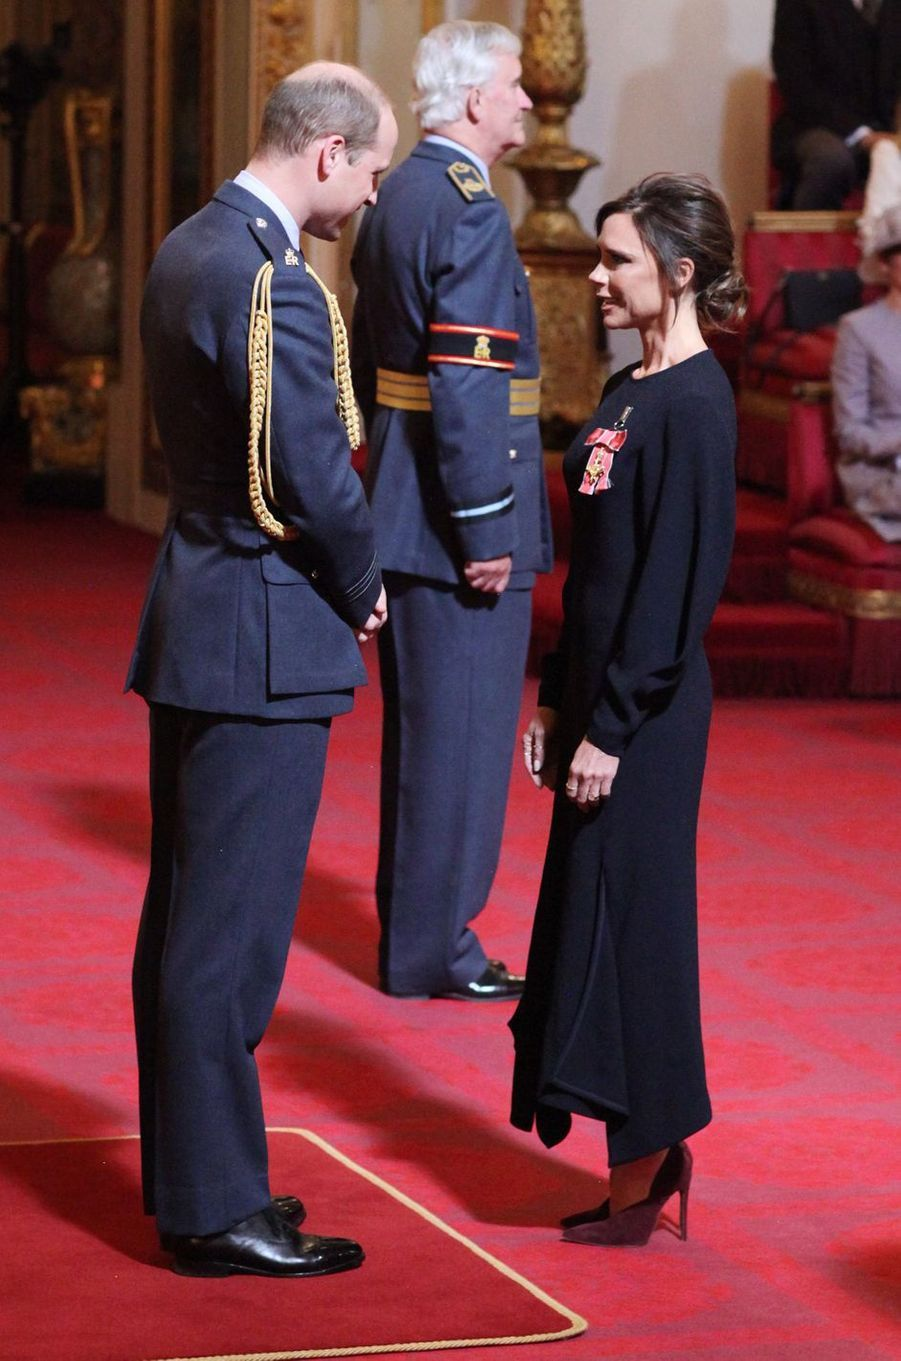 Le prince William décore Victoria Beckham à Buckingham Palace à Londres, le 19 avril 2017